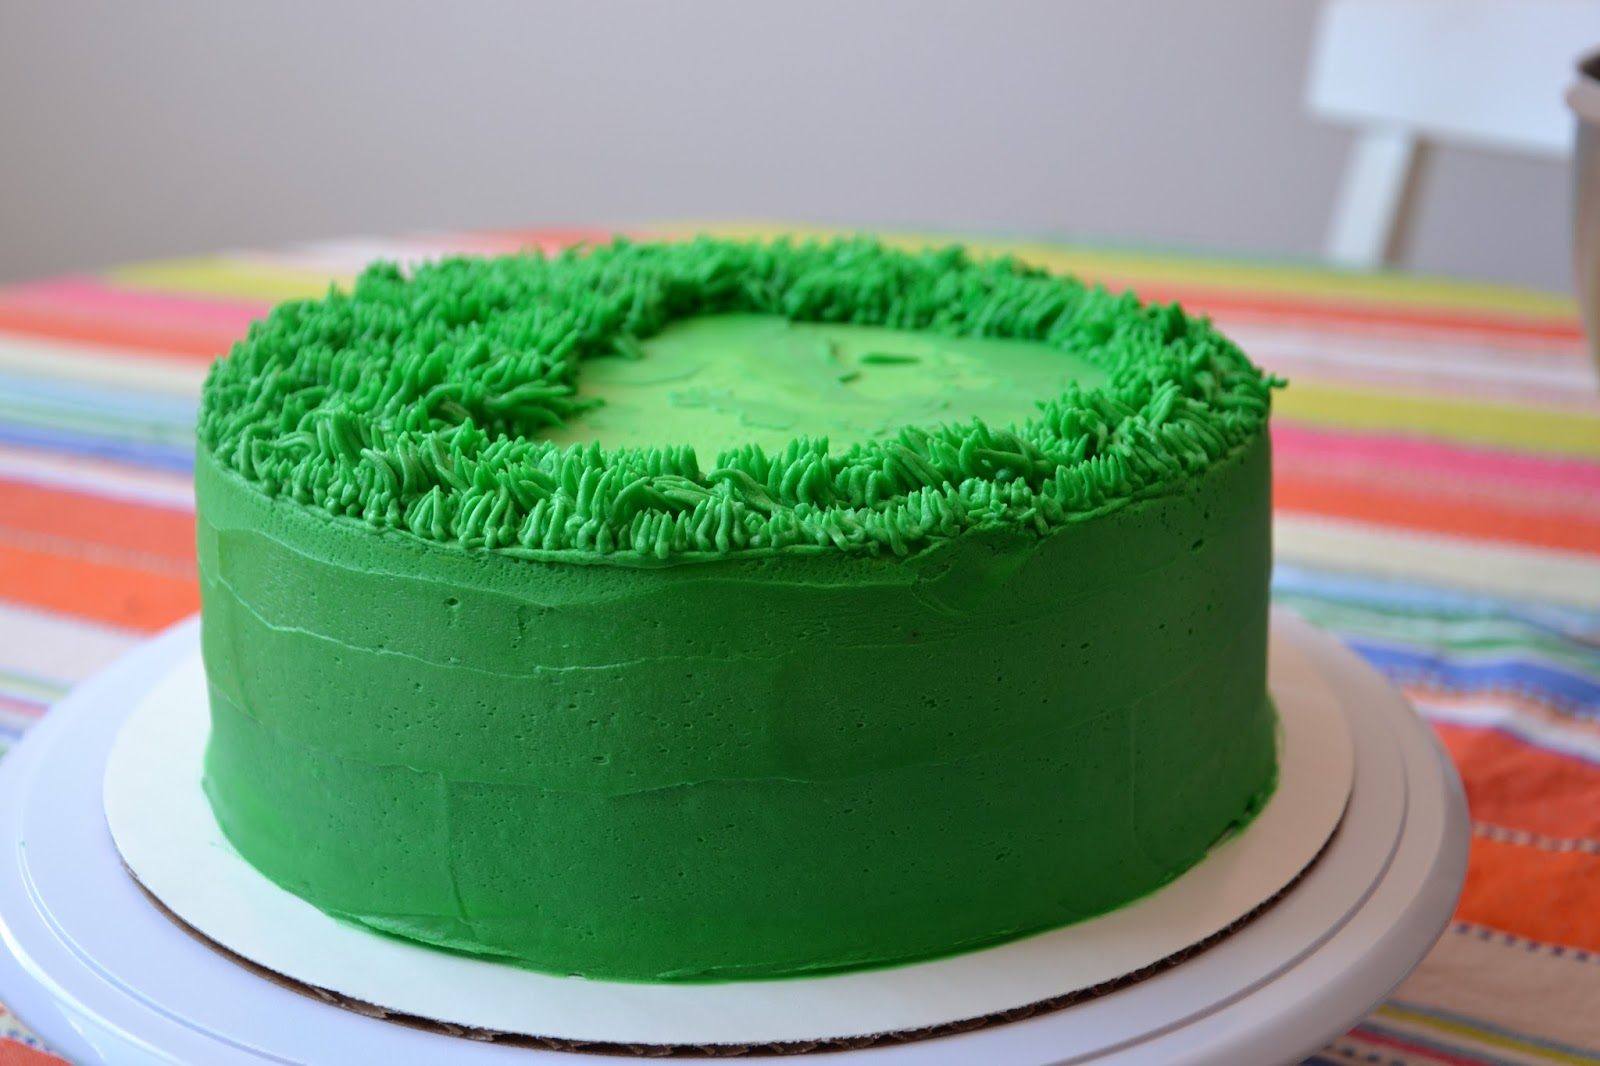 Cake Decorating Making Grass : The Sugary Shrink: Stay Off The Grass, Dude